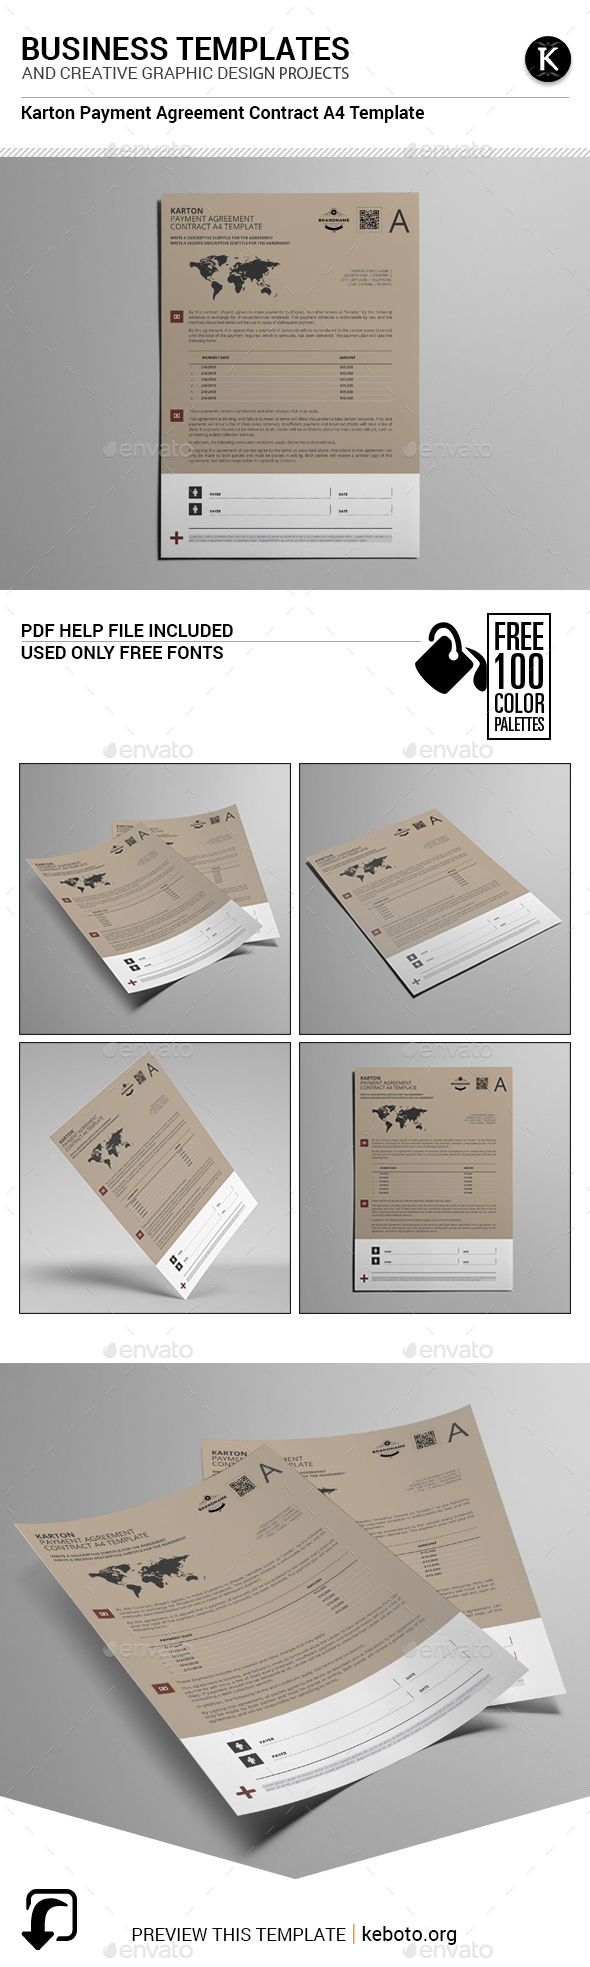 Karton Payment Agreement Contract A4 Template - Miscellaneous Print Templates